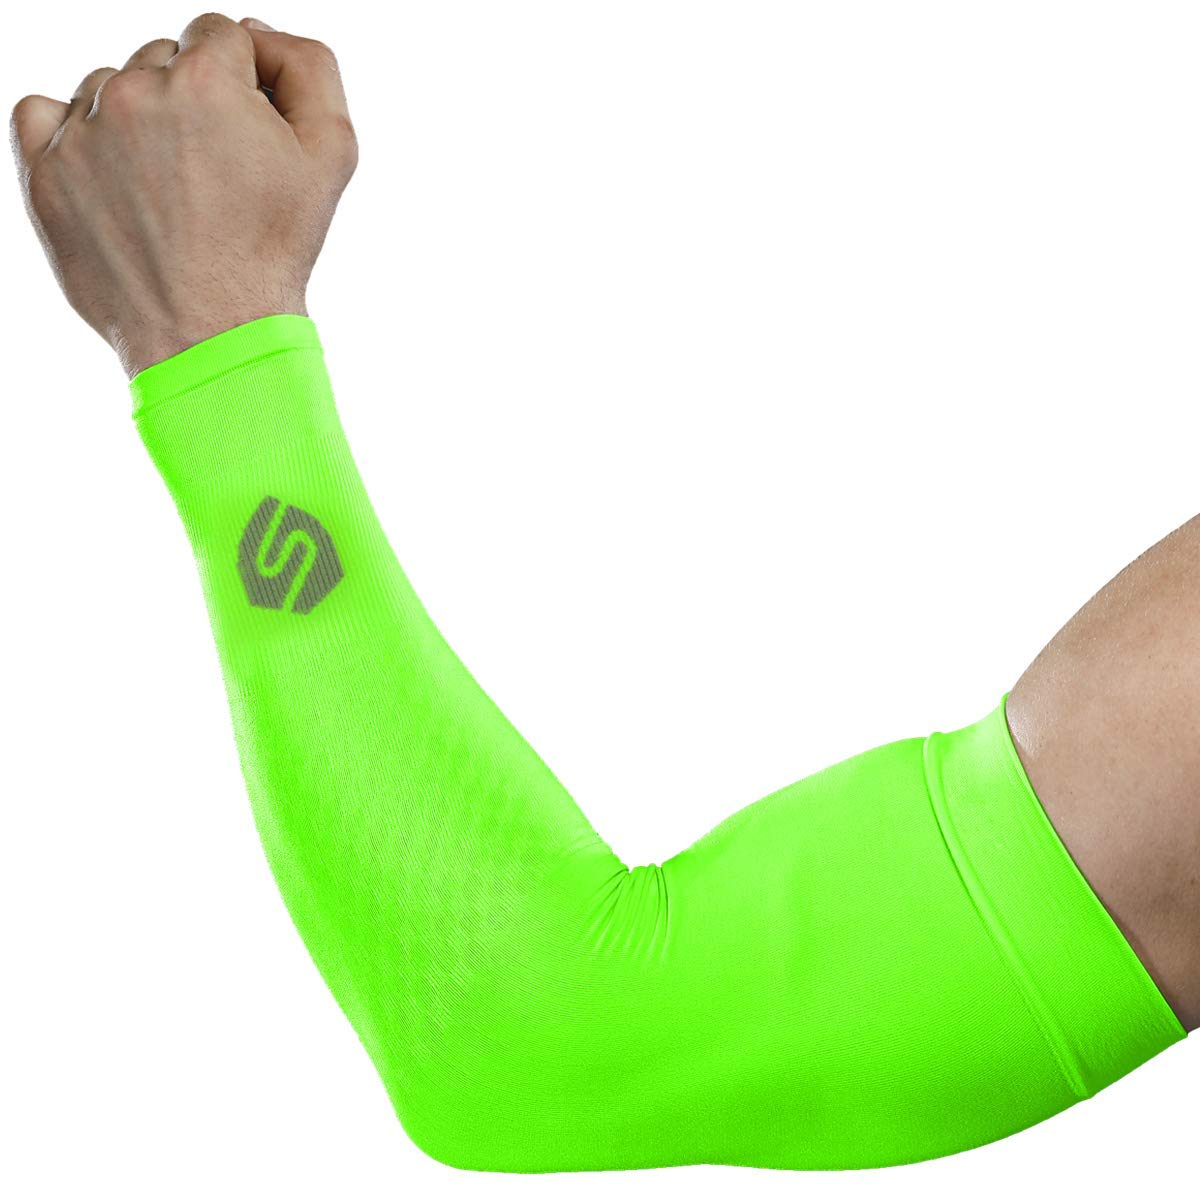 SHINYMOD Cooling Sun Sleeves 2018 Newest Upgraded Version 1 Pair/ 3 Pairs UV Protection Sunblock Arm Tattoo Cover Sleeves Men Women Cycling Driving Golf Running-(1 Pair Neon Green)